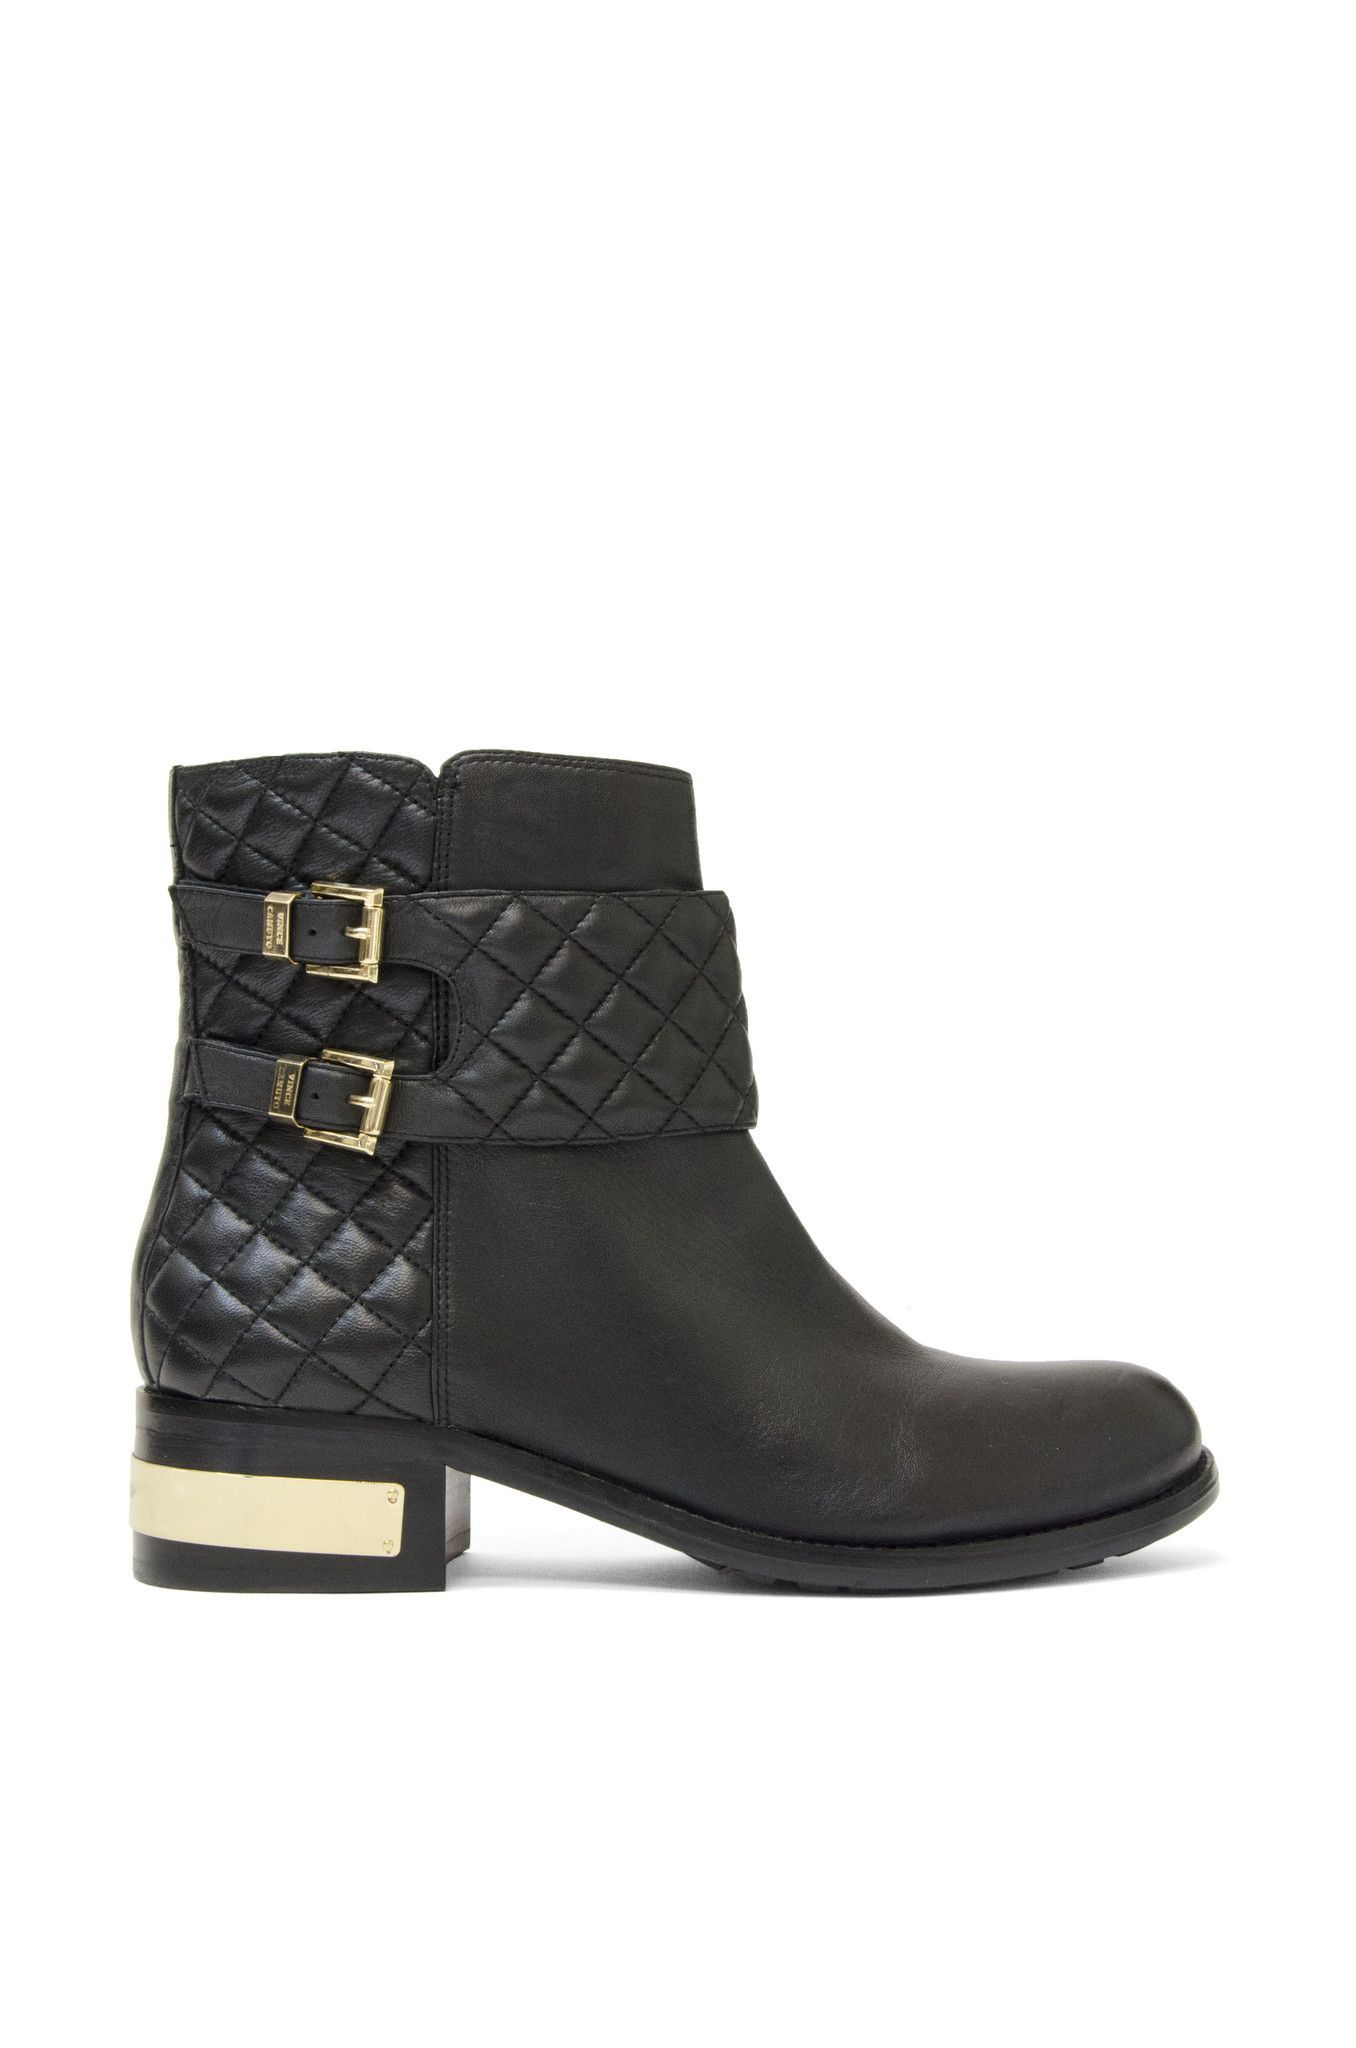 c9975e3c6785c Vince Camuto Black Leather Ankle Boot with Quilted Leather & Gold Accent